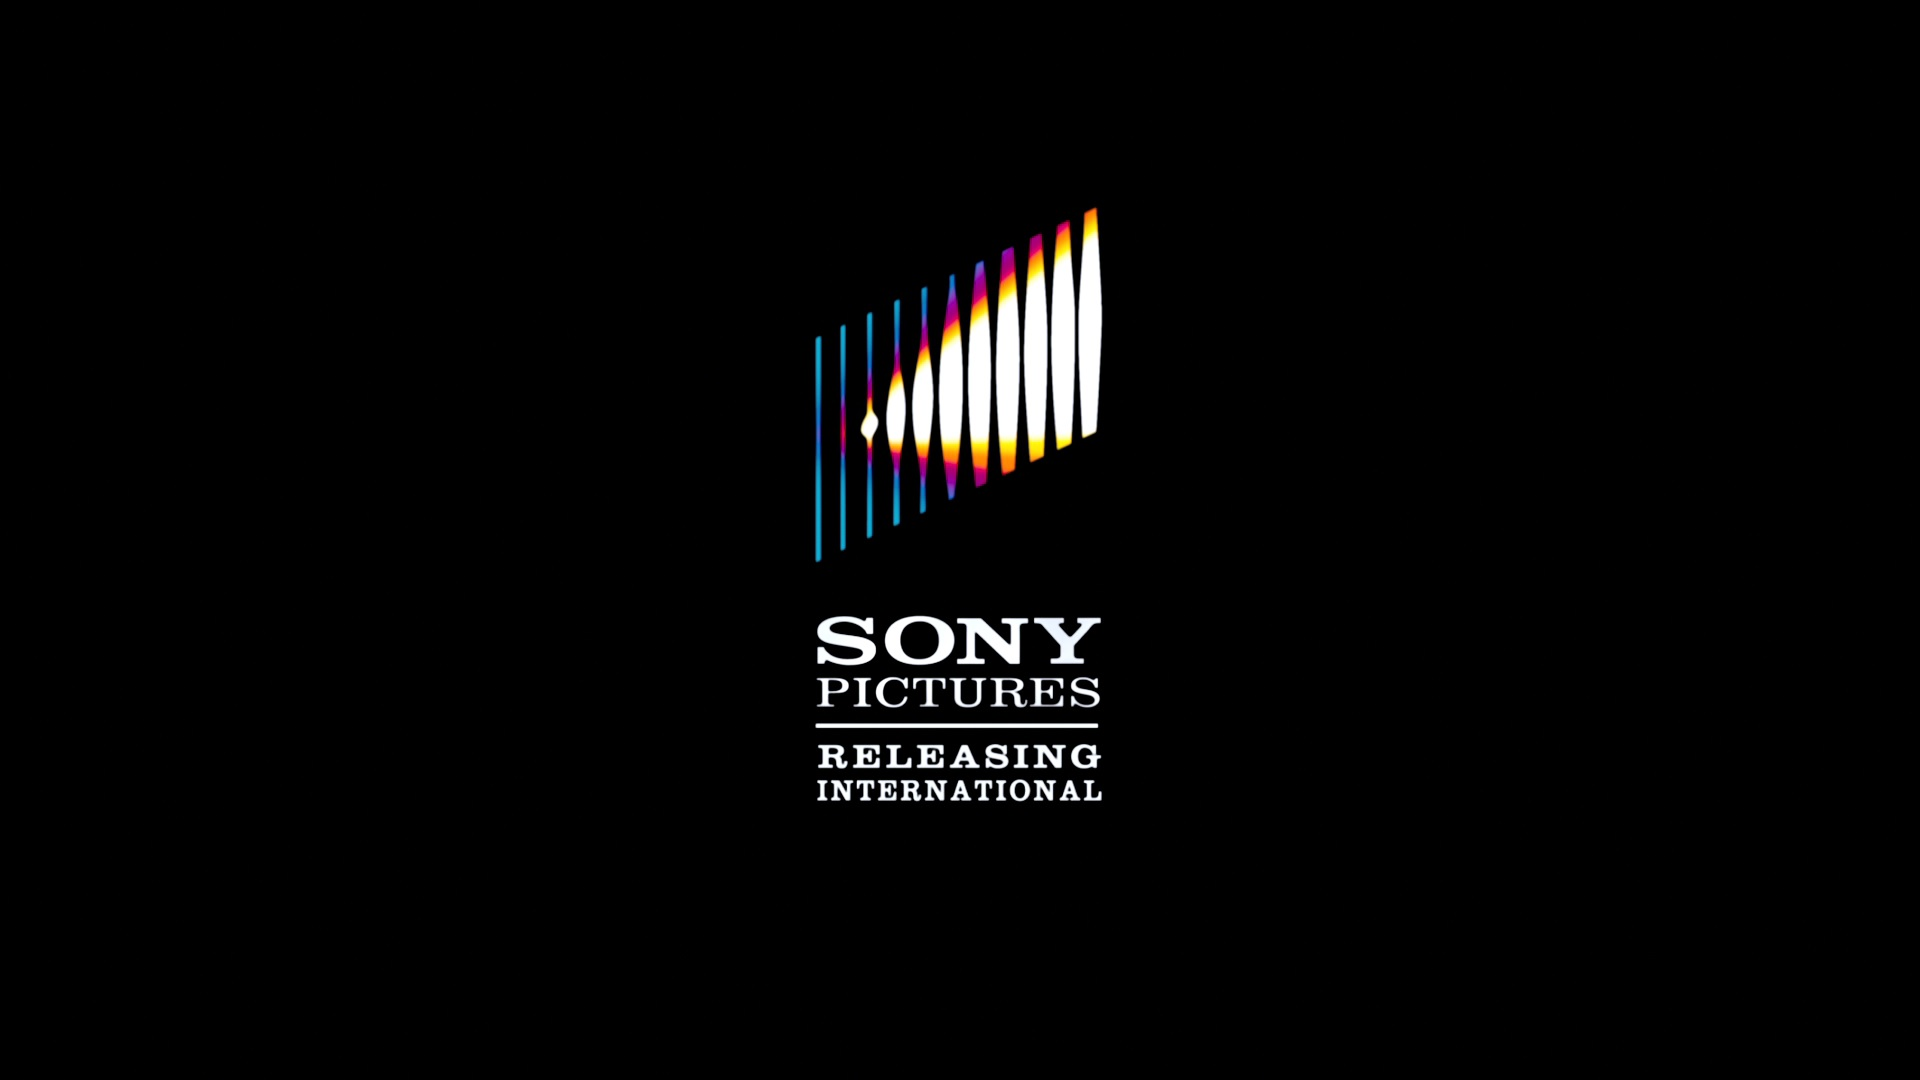 sony pictures entertainm knights - HD1920×1080